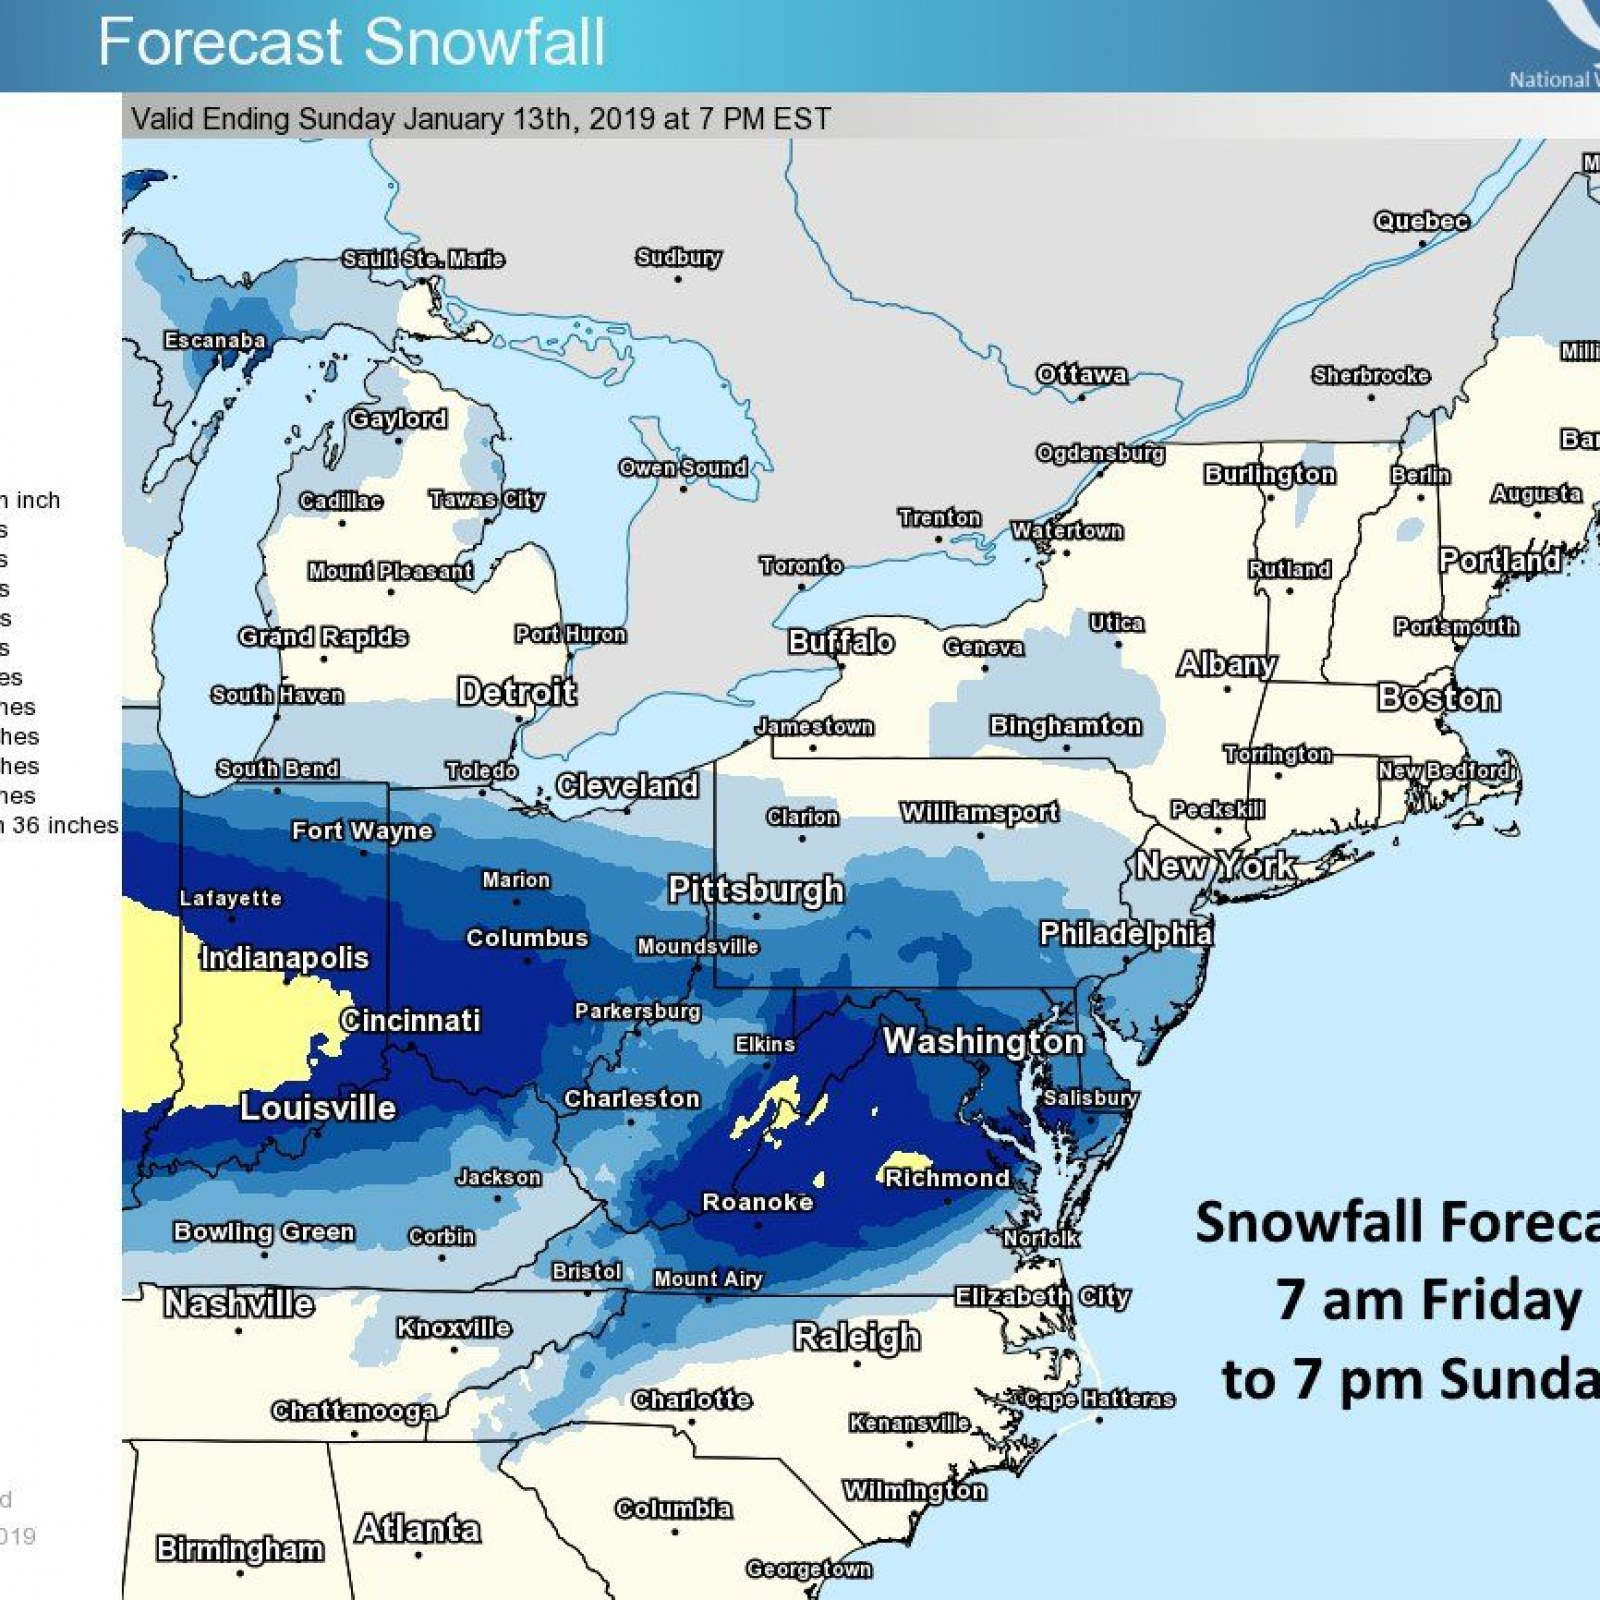 Snow Storm to Bring Wintry Weather Mid-West to East Coast ... on